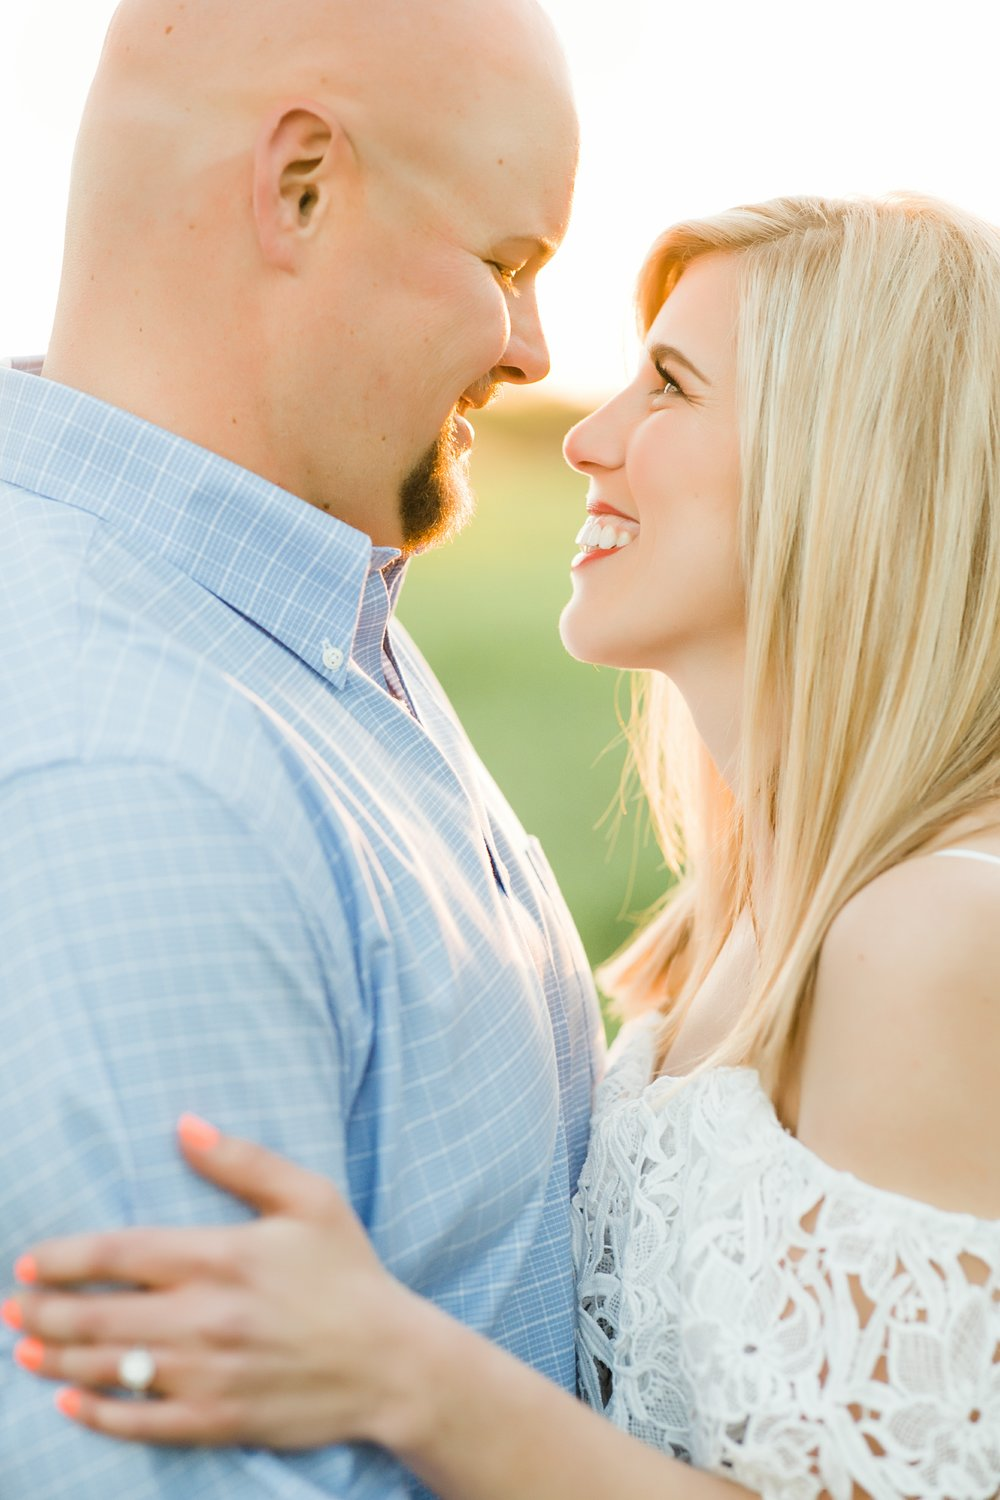 kayla-trent-country-engagement-session-texas-windthorst-graham-wichita-falls-jeep-engaged-00012.jpg